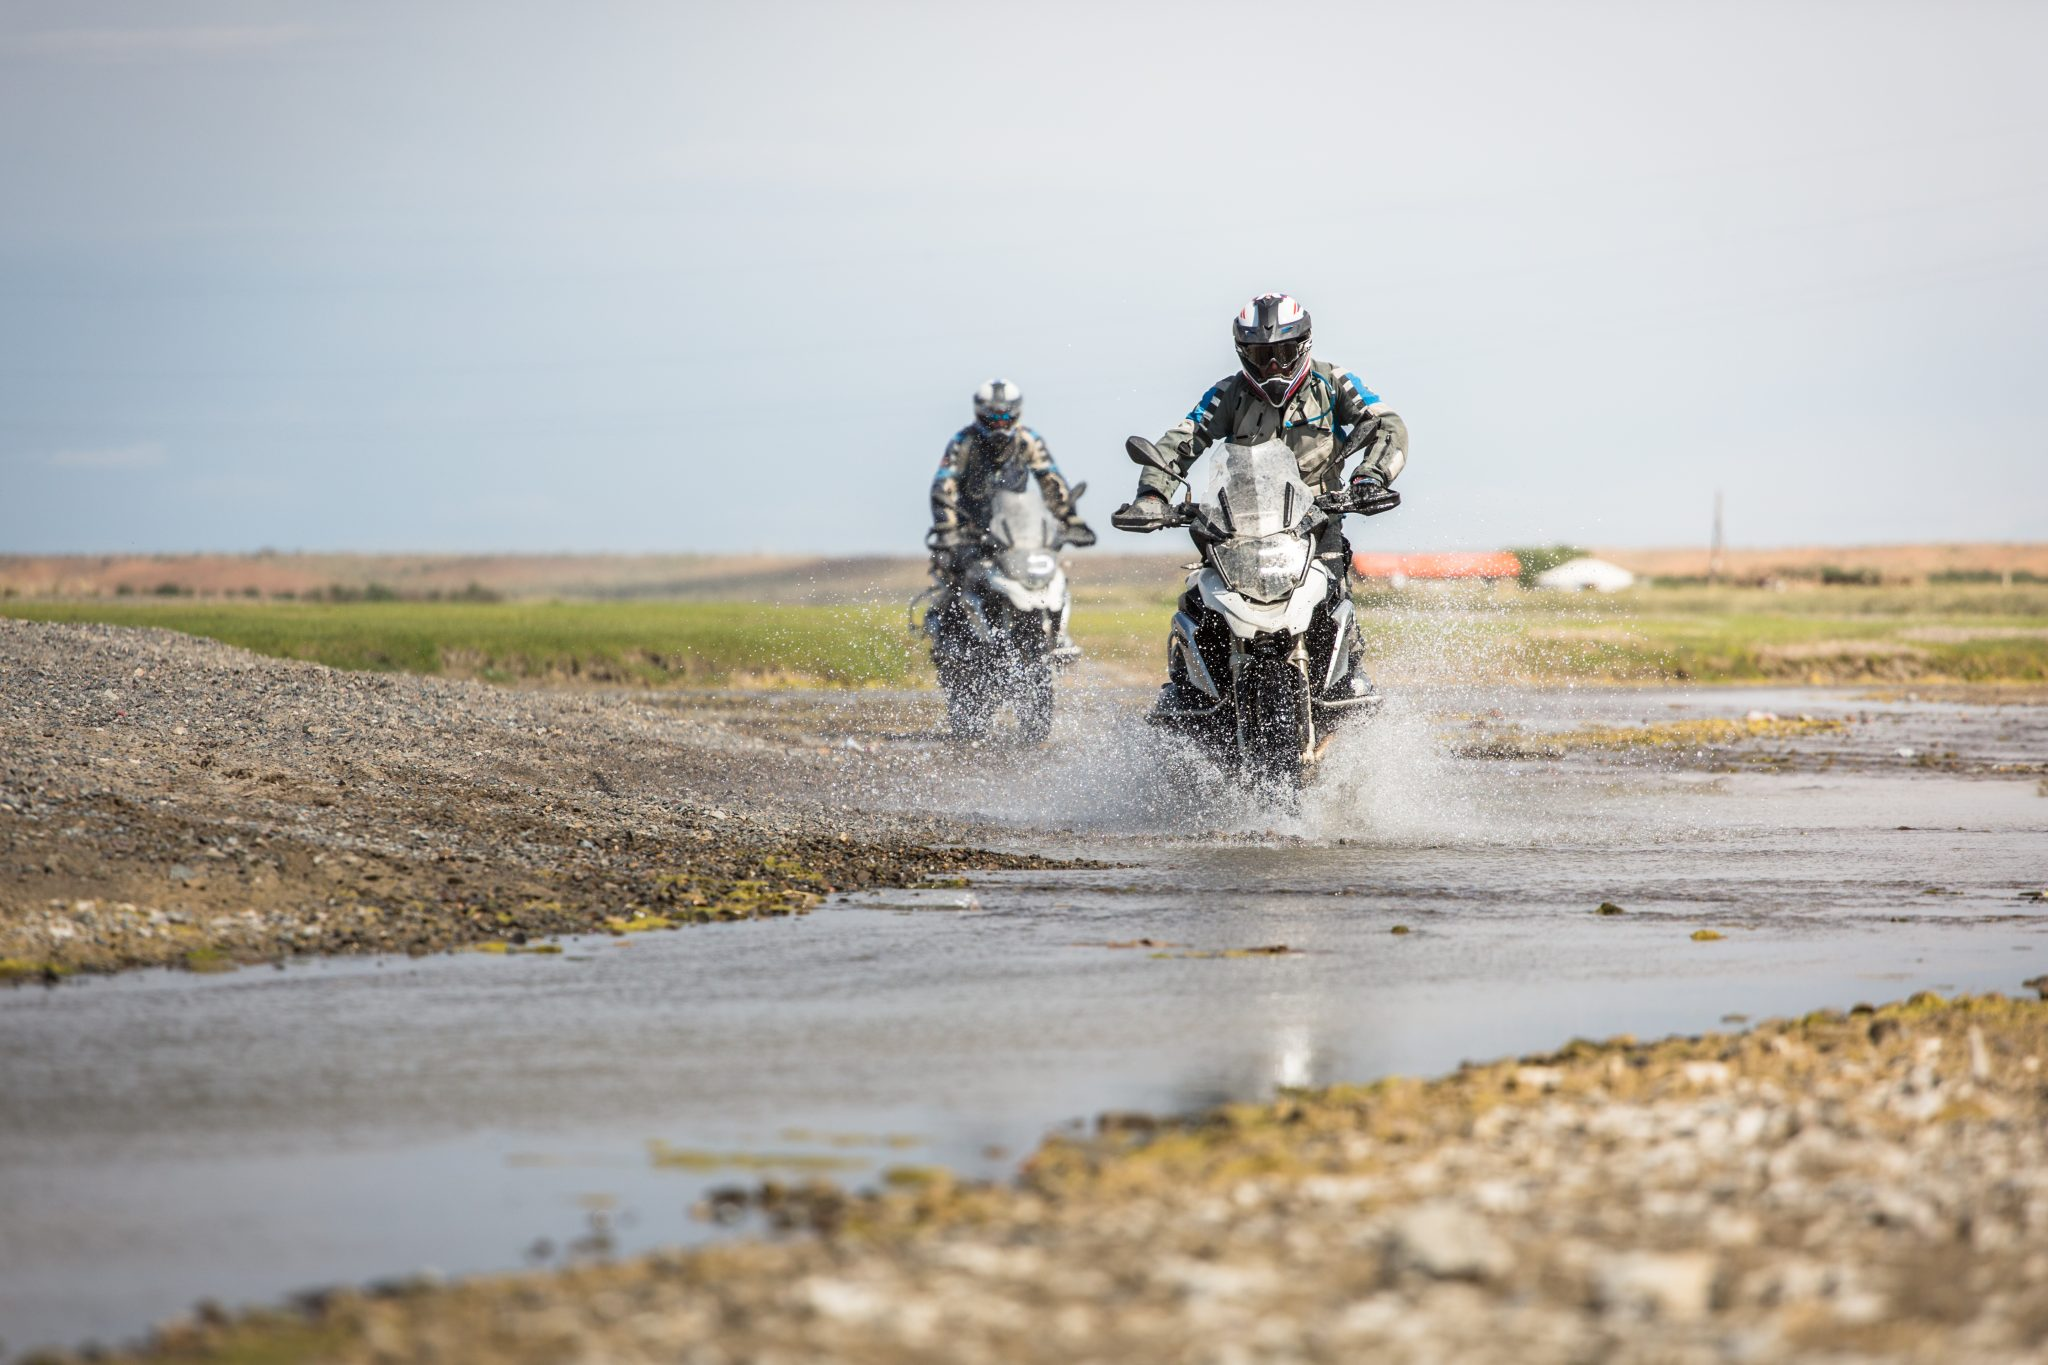 BMW celebrates the spirit of the GS in Central Asia